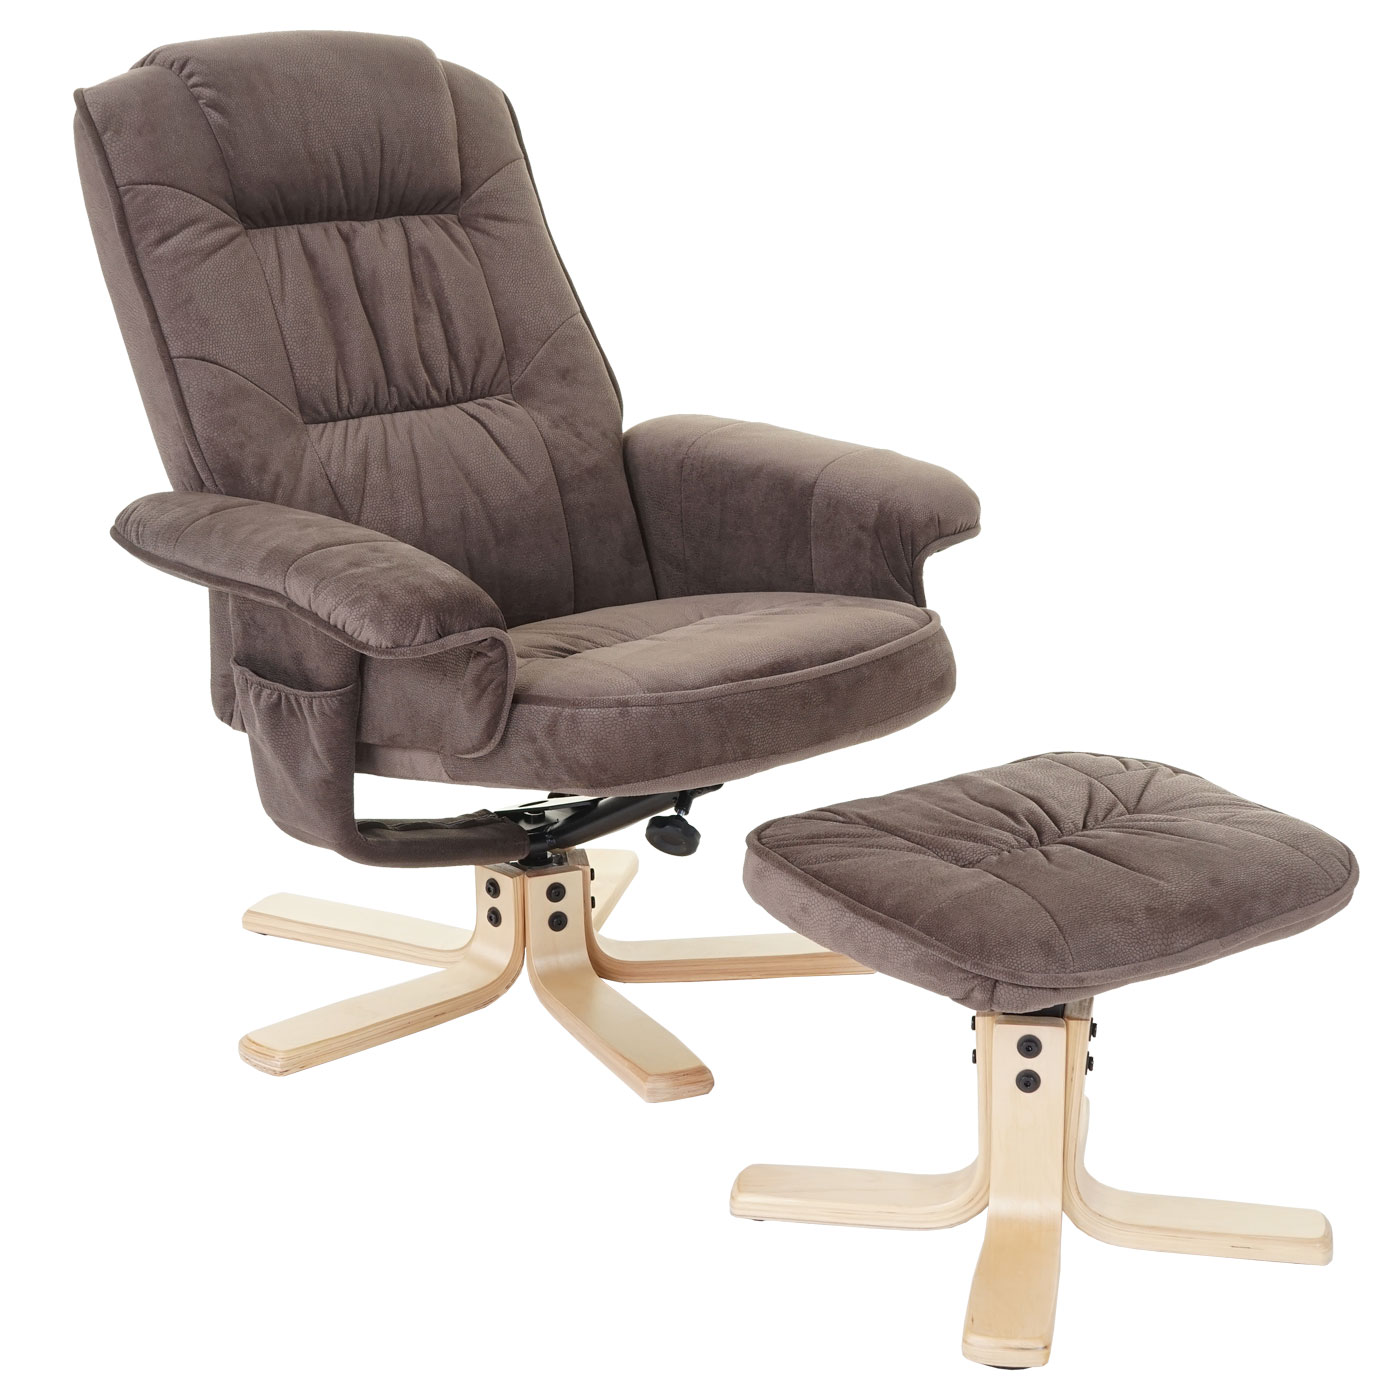 Tv Sessel Mit Massagefunktion Relaxsessel M56 Fernsehsessel Tv Sessel Mit Hocker Stoff Textil Wildlederimitat